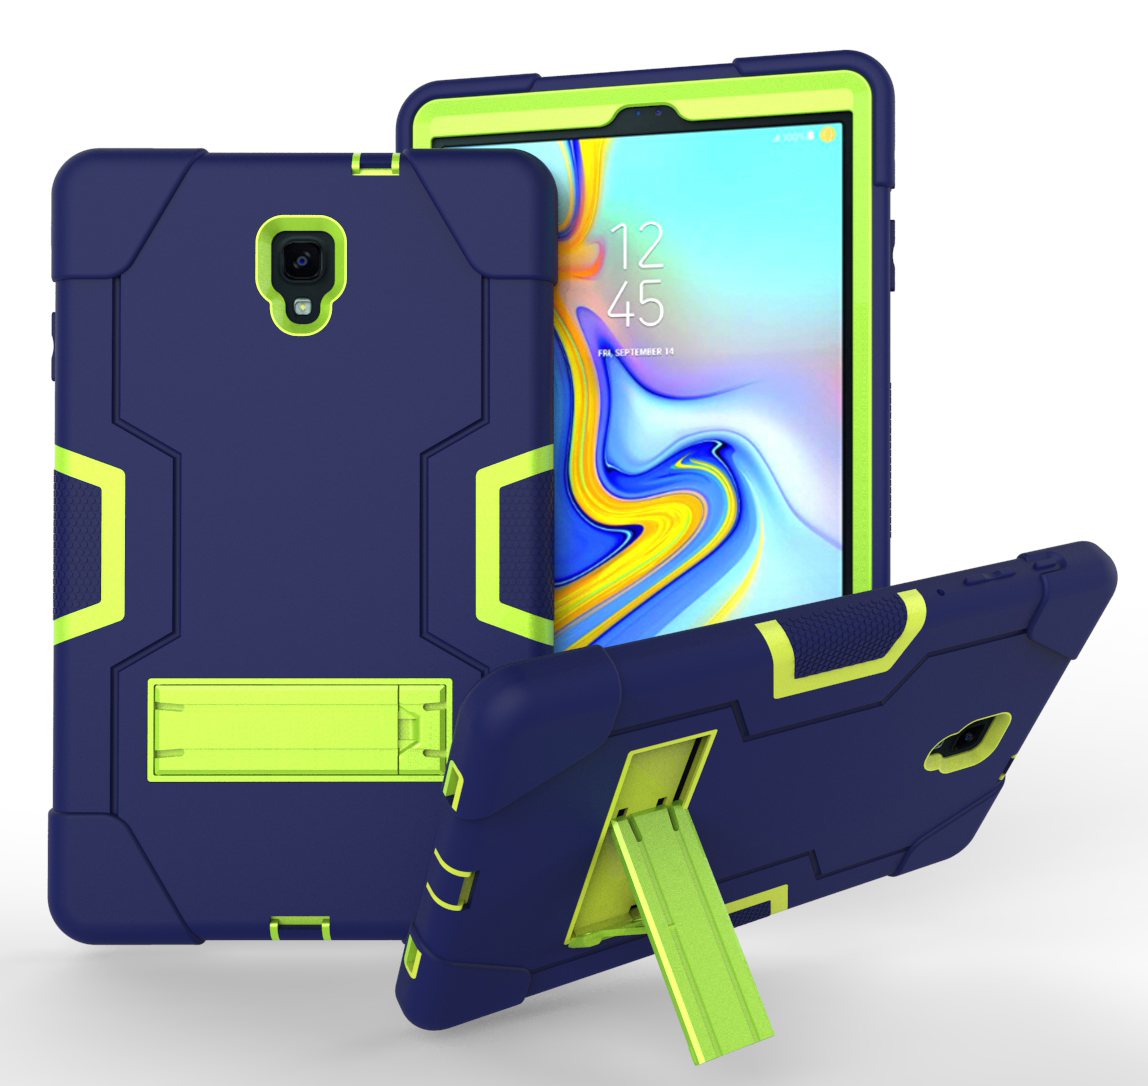 Kids Shockproof Hybrid Silicone Case For Samsung Galaxy Tab A A2 10.5 2018 T590 T595 T597 SM-T590 SM-T595 Protective Cover #R